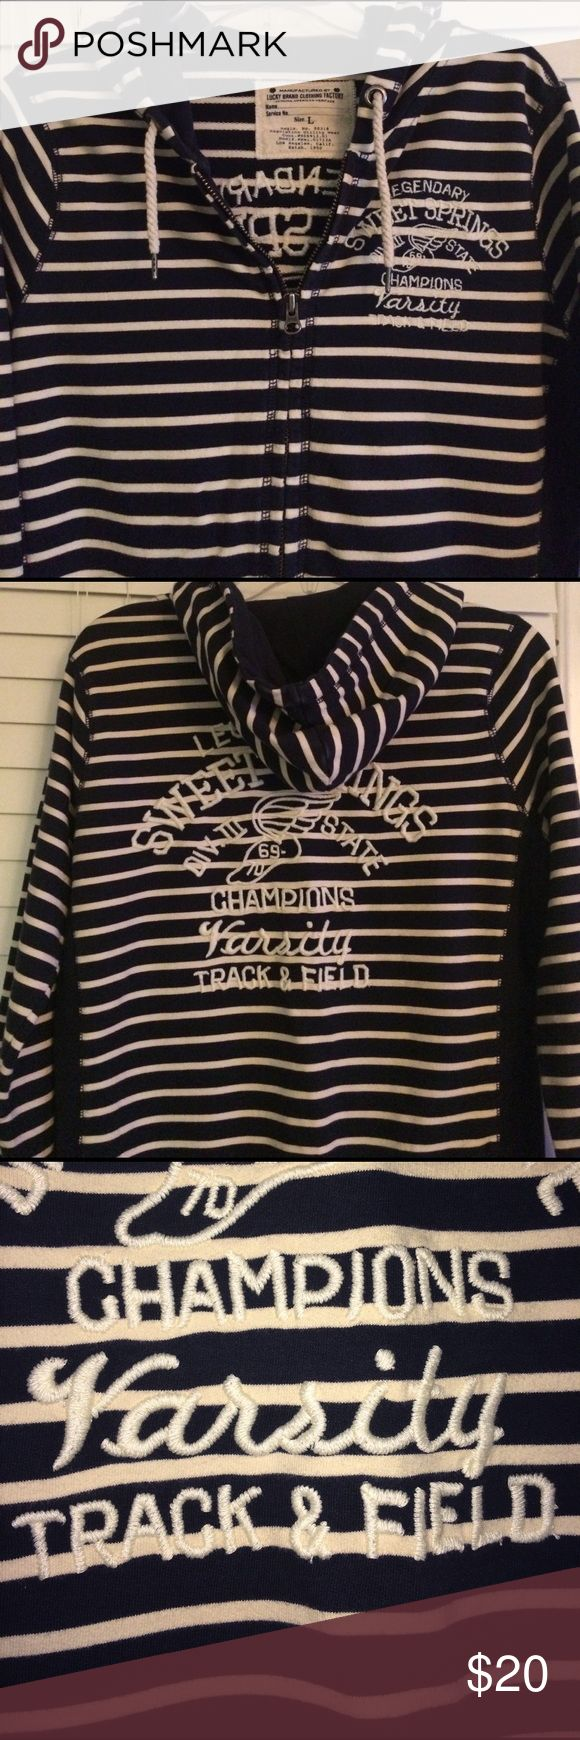 Lucky 🍀 Hoodie Navy and Cream-colored striped Zip Up Hoodie. Embroidered Track & Field logo. Front pockets. Great condition! Lucky Brand Tops Sweatshirts & Hoodies